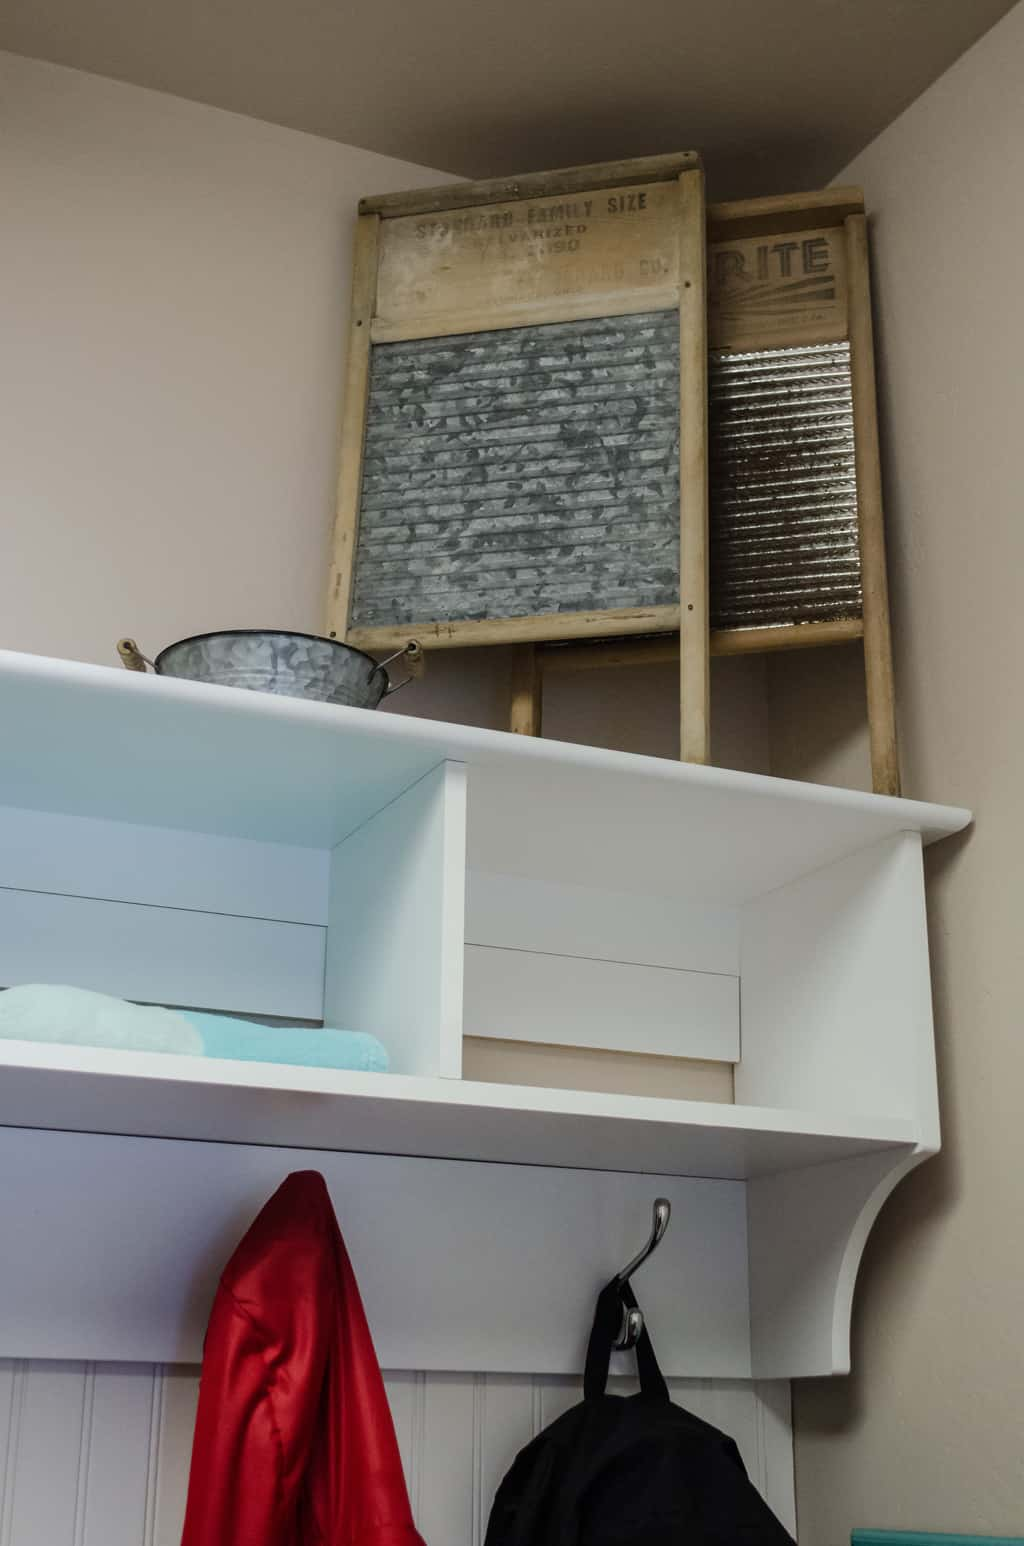 old washboards as decoration above a shelf in a laundry room